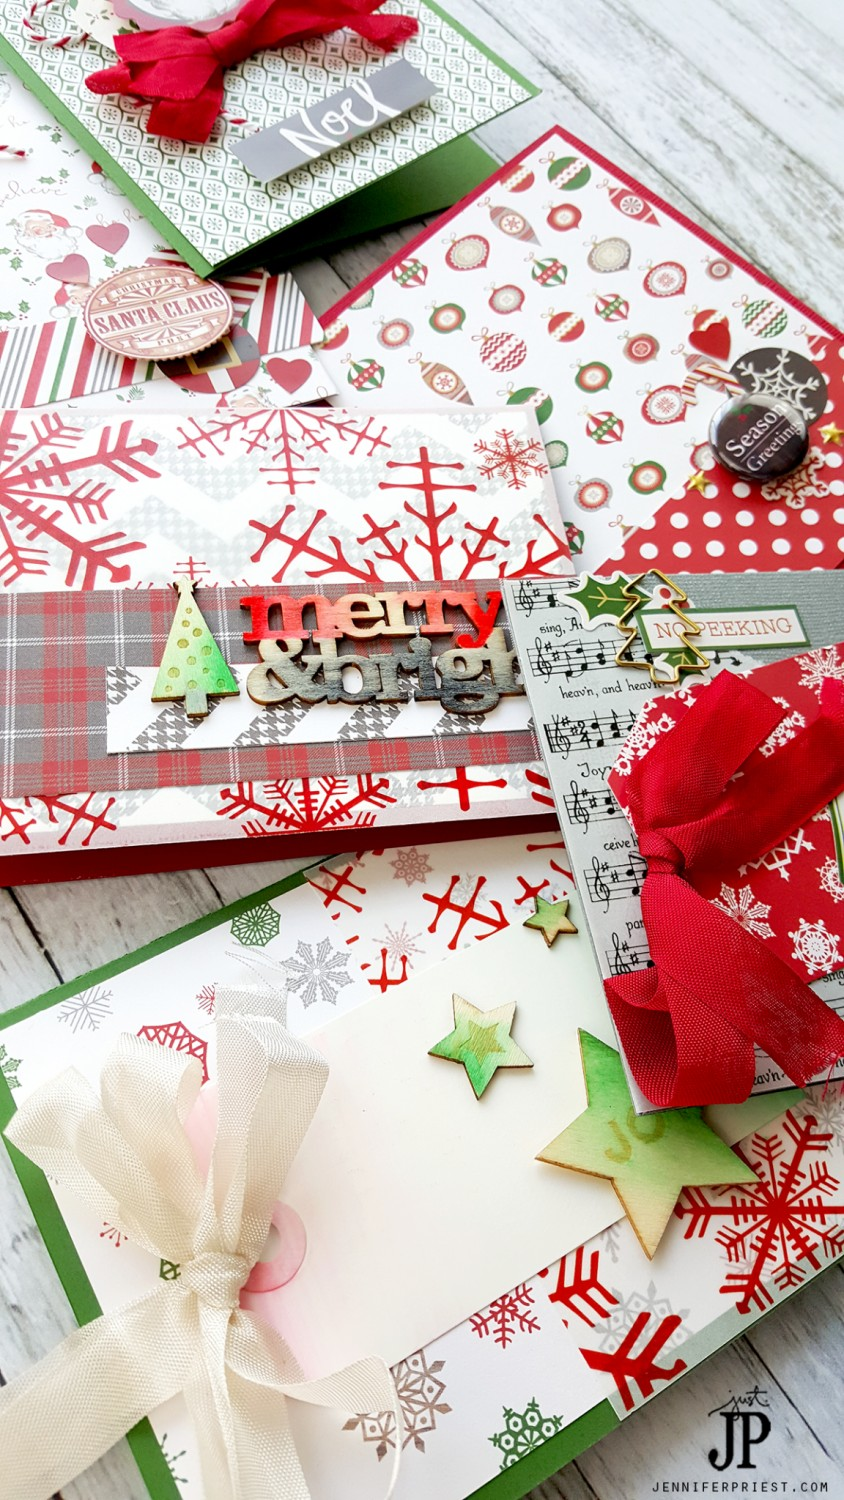 Fast-Christmas-Cards-Clique-Kits-Tombow-USA-Jpriest